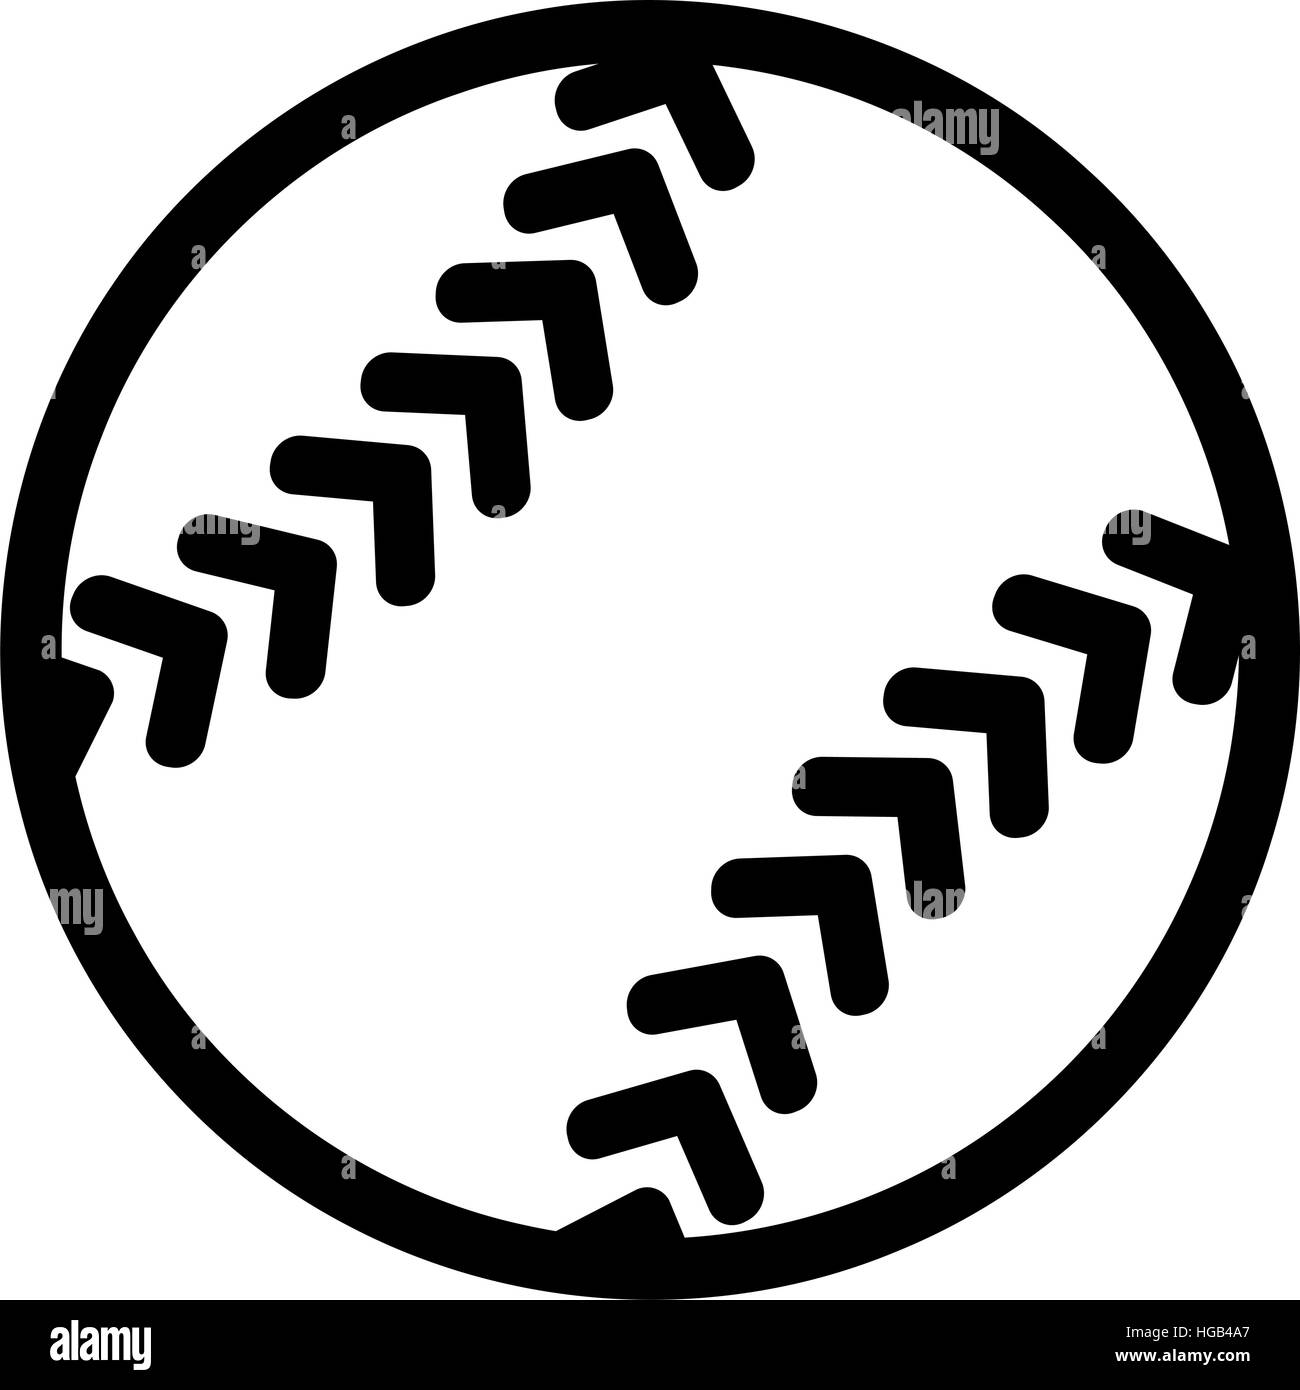 softball icon stock vector art illustration vector image rh alamy com softball bat vector art softball vector clip art